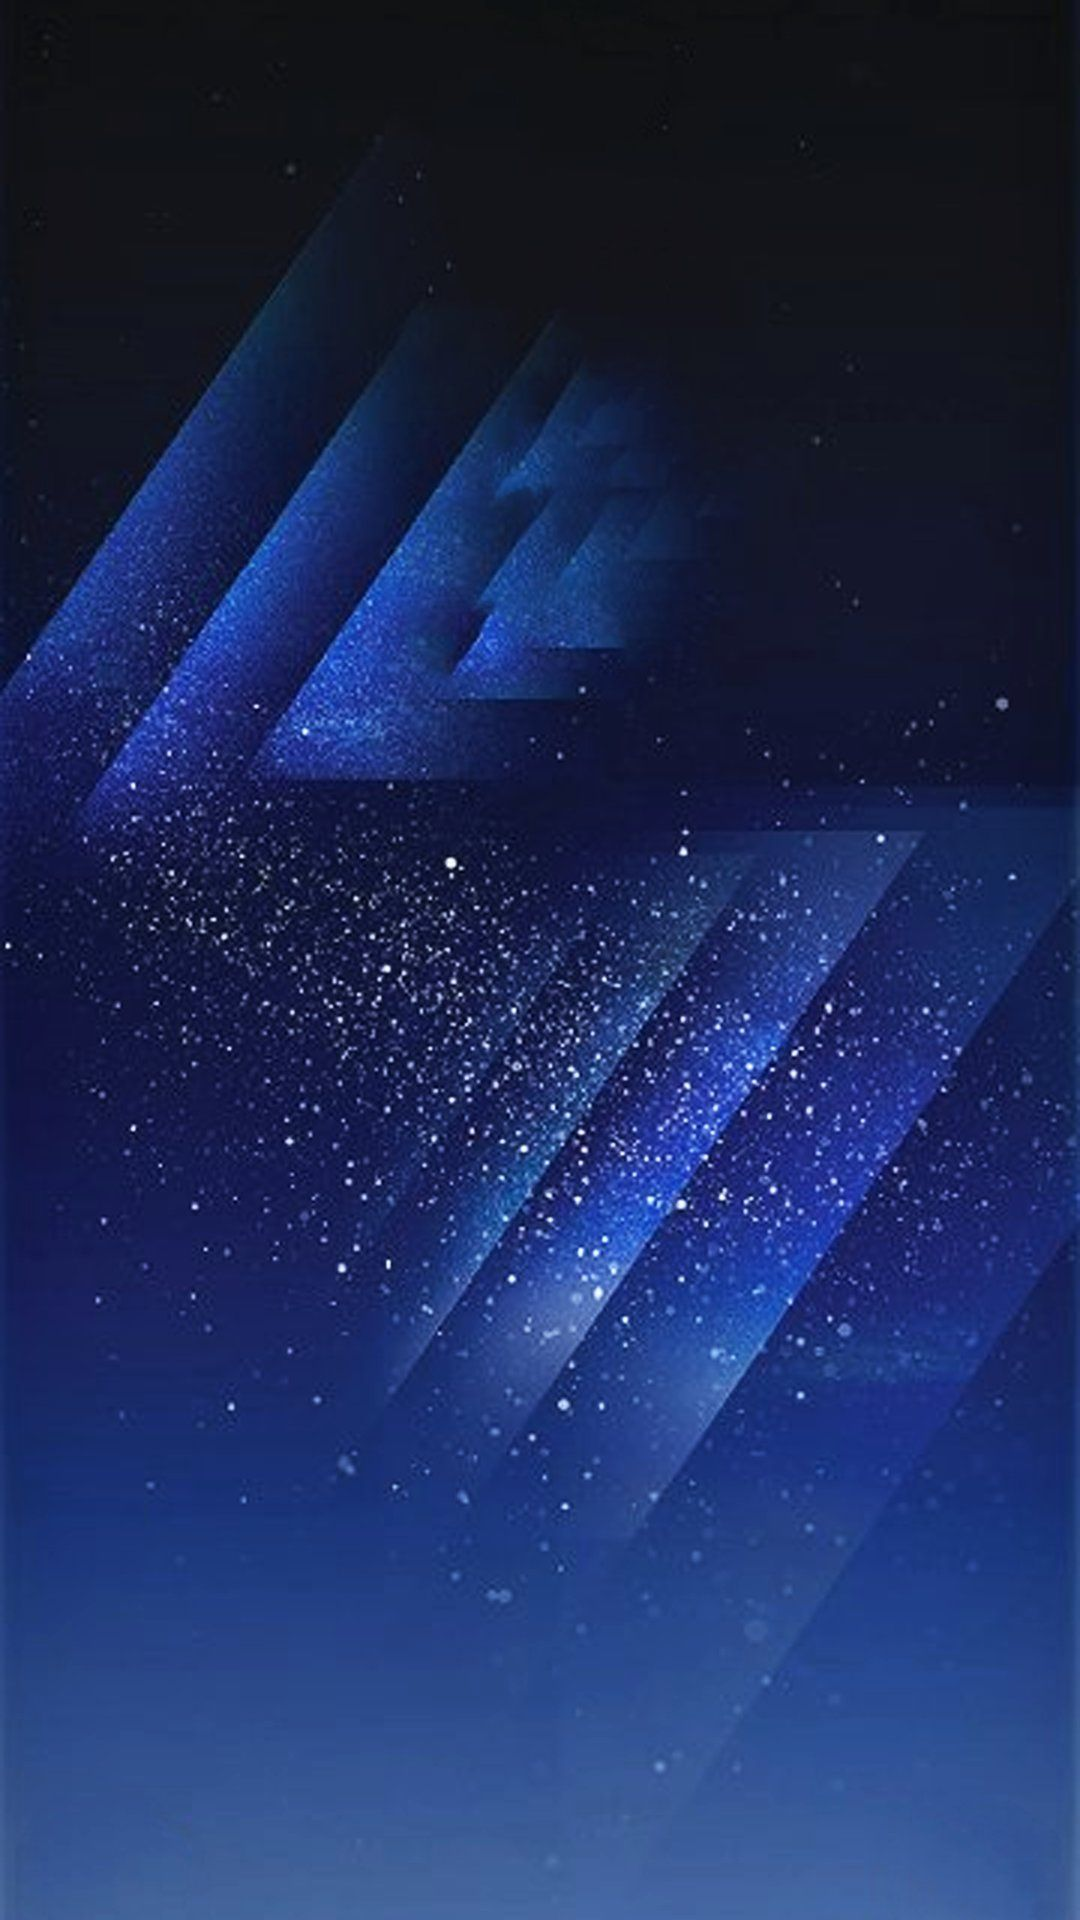 Galaxy Black And Blue Wallpaper Android Download In 2020 Galaxy S8 Wallpaper Galaxy Phone Wallpaper Samsung Galaxy Wallpaper